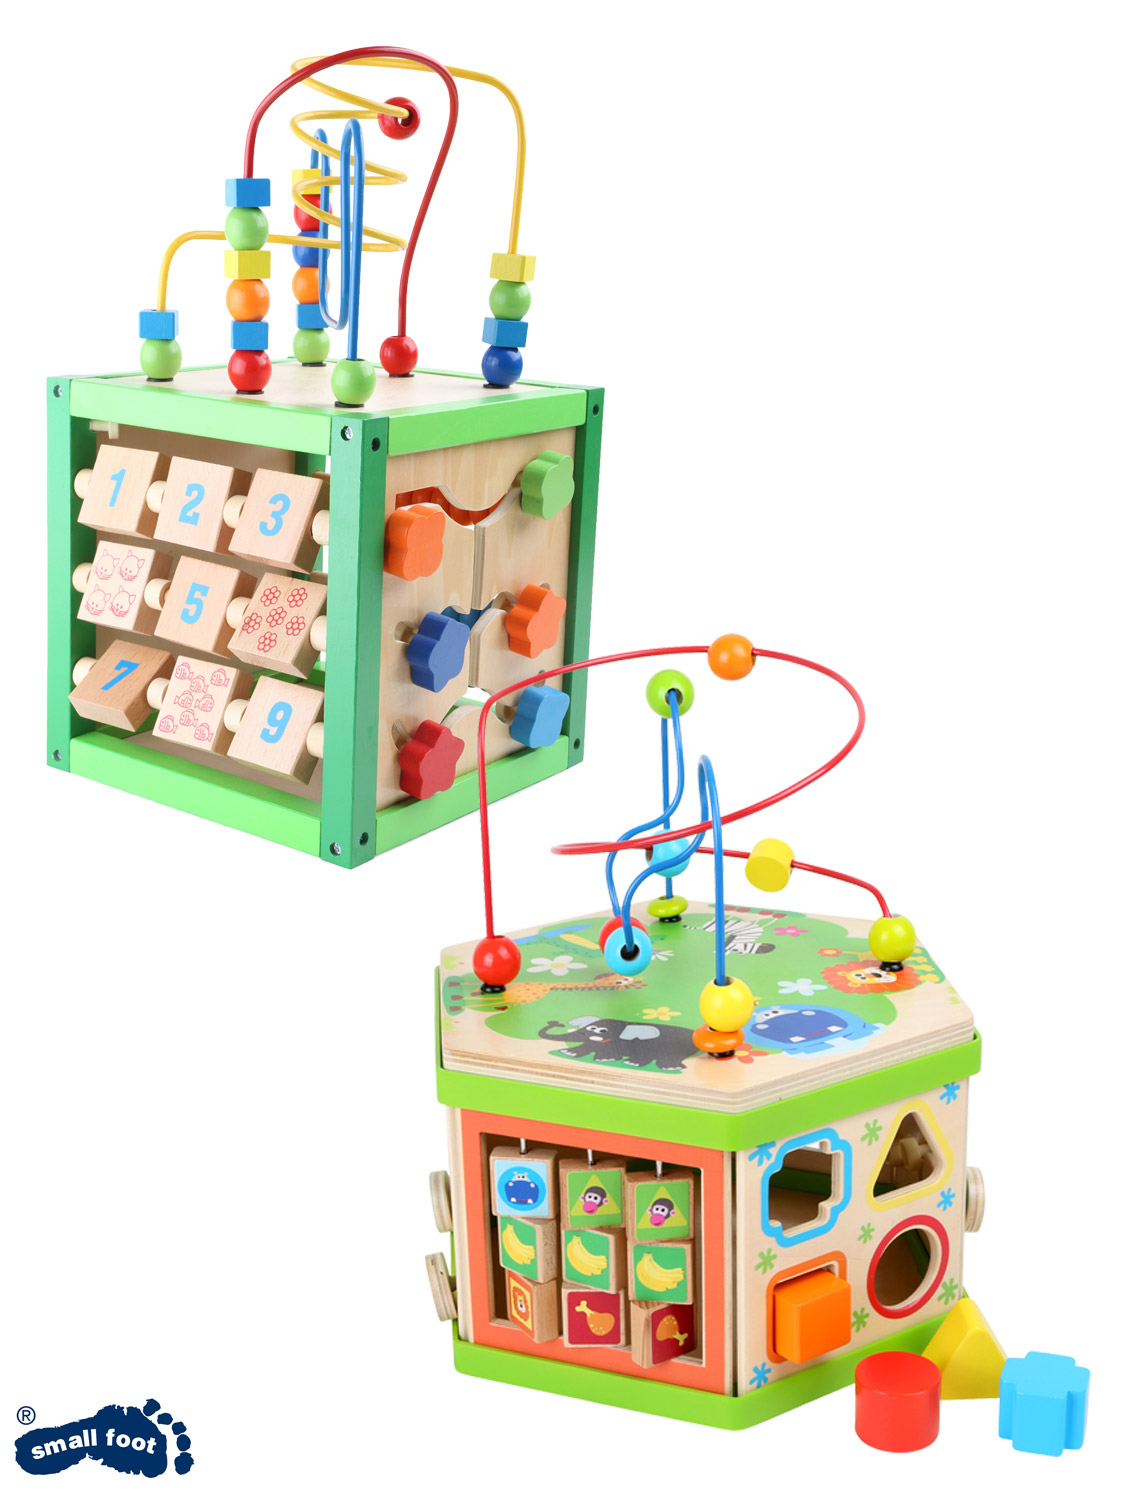 Details About Wooden Activity Cube Toy Multi Function Learning Motor Skills Toddler Childrens